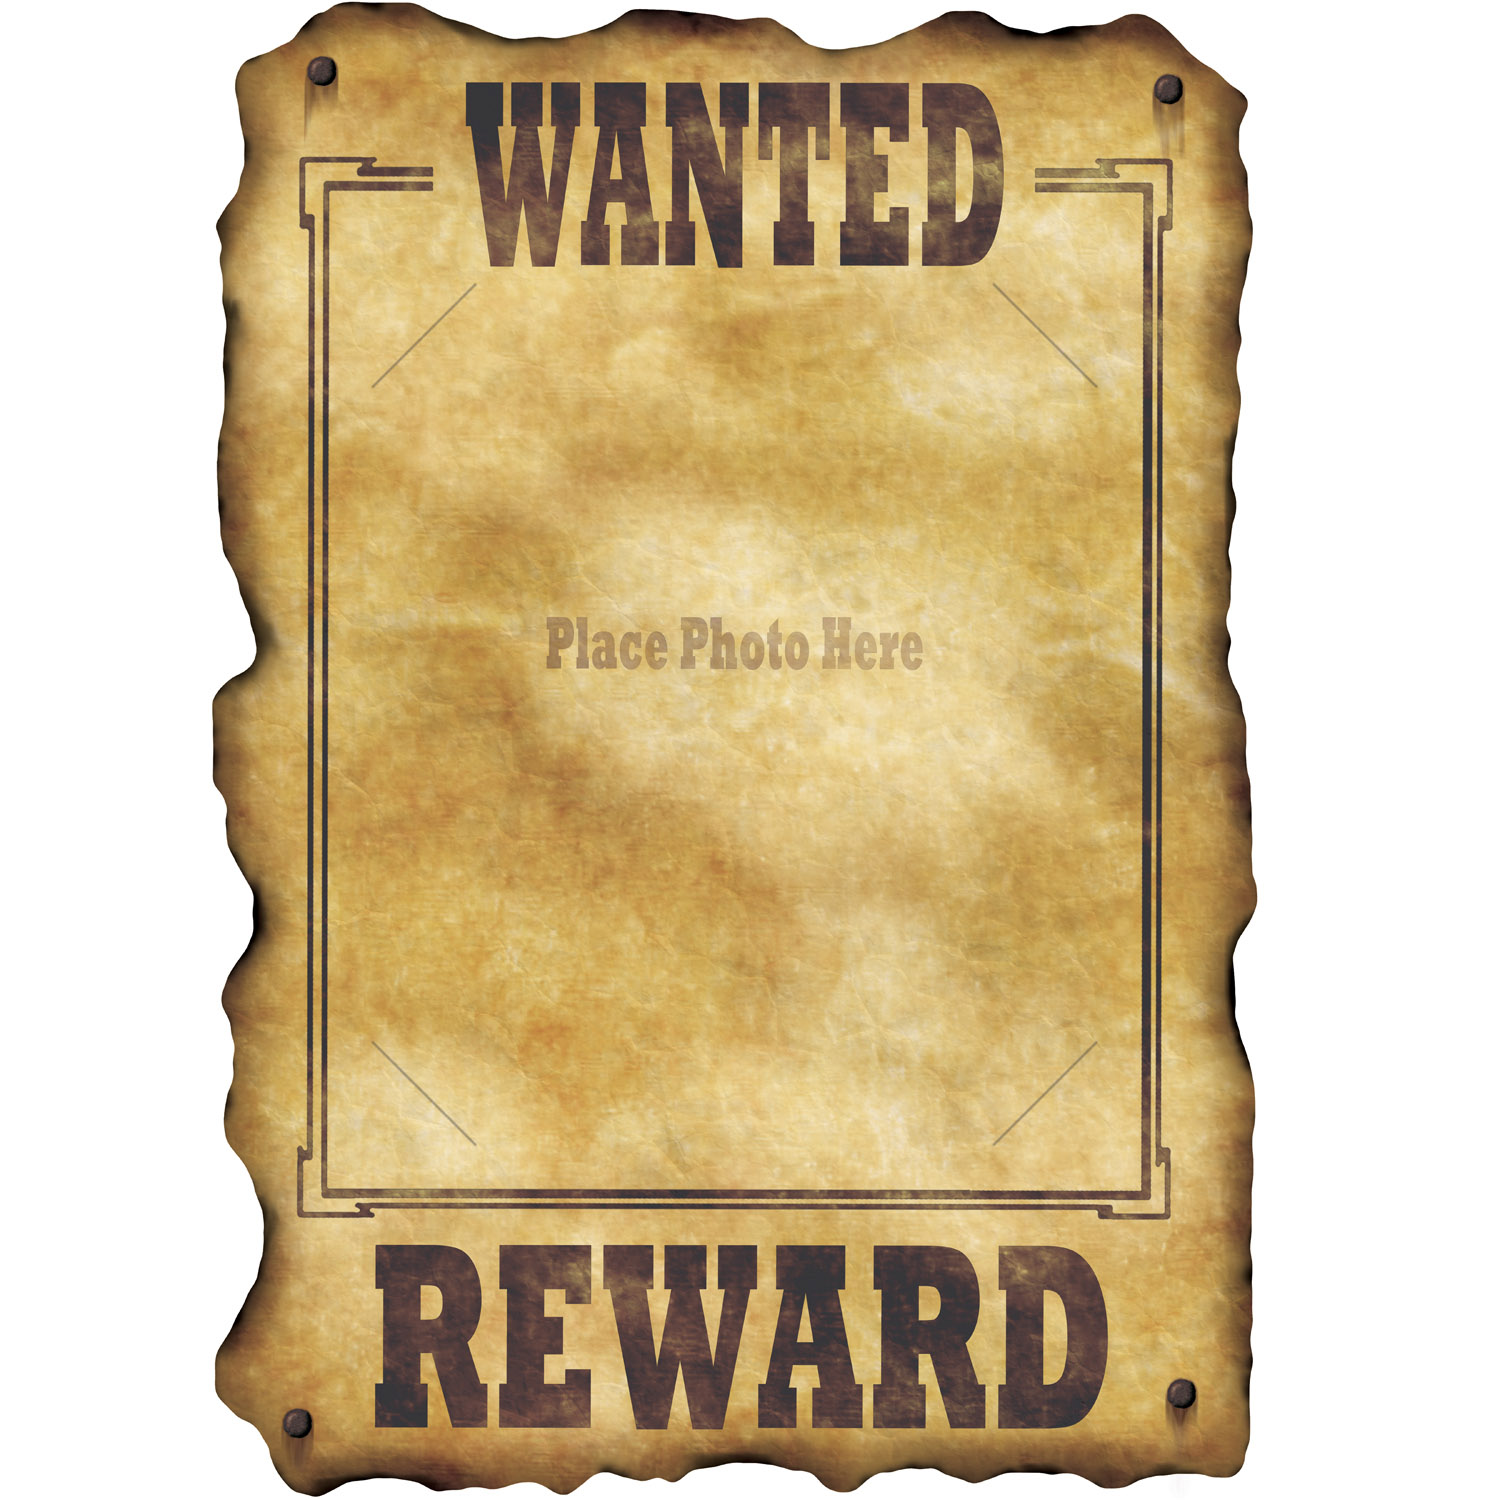 Western Jumbo 17 Wanted Photo Sign Party Supplies Canada